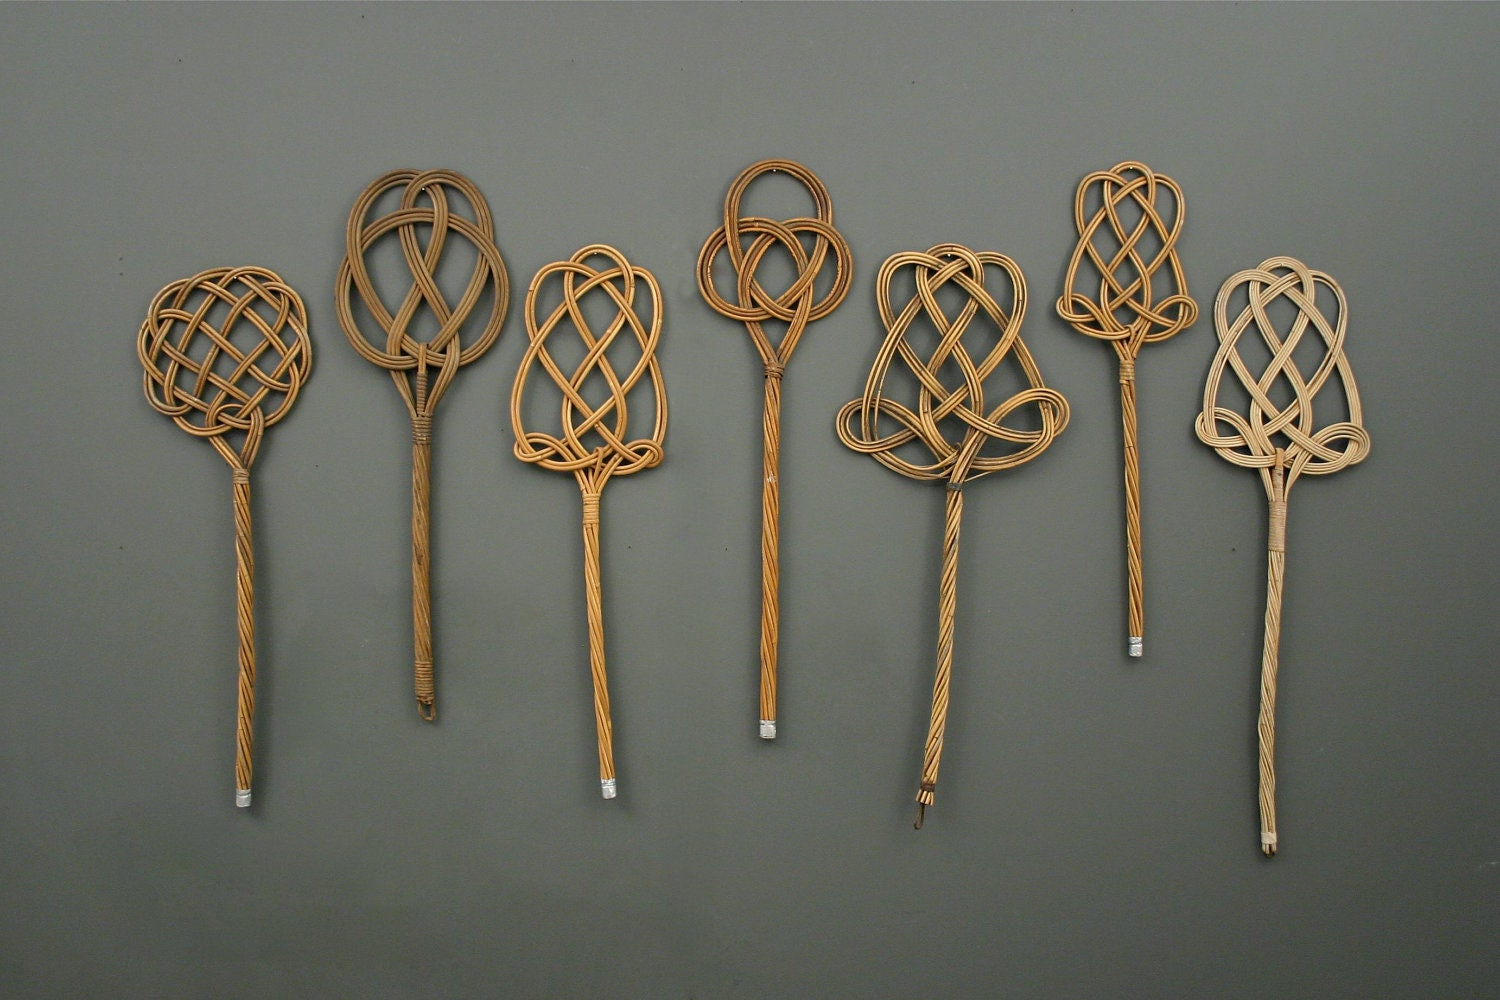 1 Vintage Carpet Beater From England Wall Display